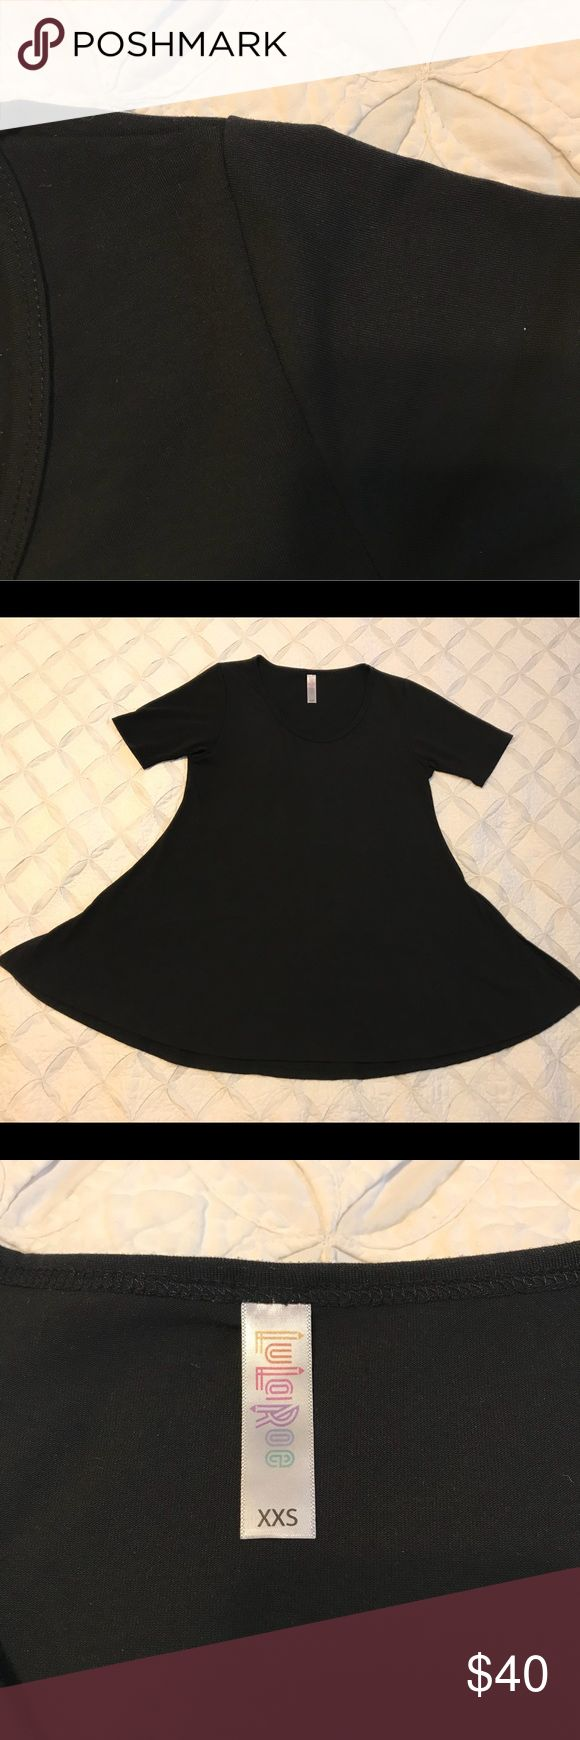 Solid Black LuLaRoe XXS Perfect T Only worn a few times and is in excellent condition. Really nice dressy fabric. Not cottony or faded.  96% Polyester, 4% Spandex The neckline isn't as big as some others I've tried on. LuLaRoe Tops Blouses